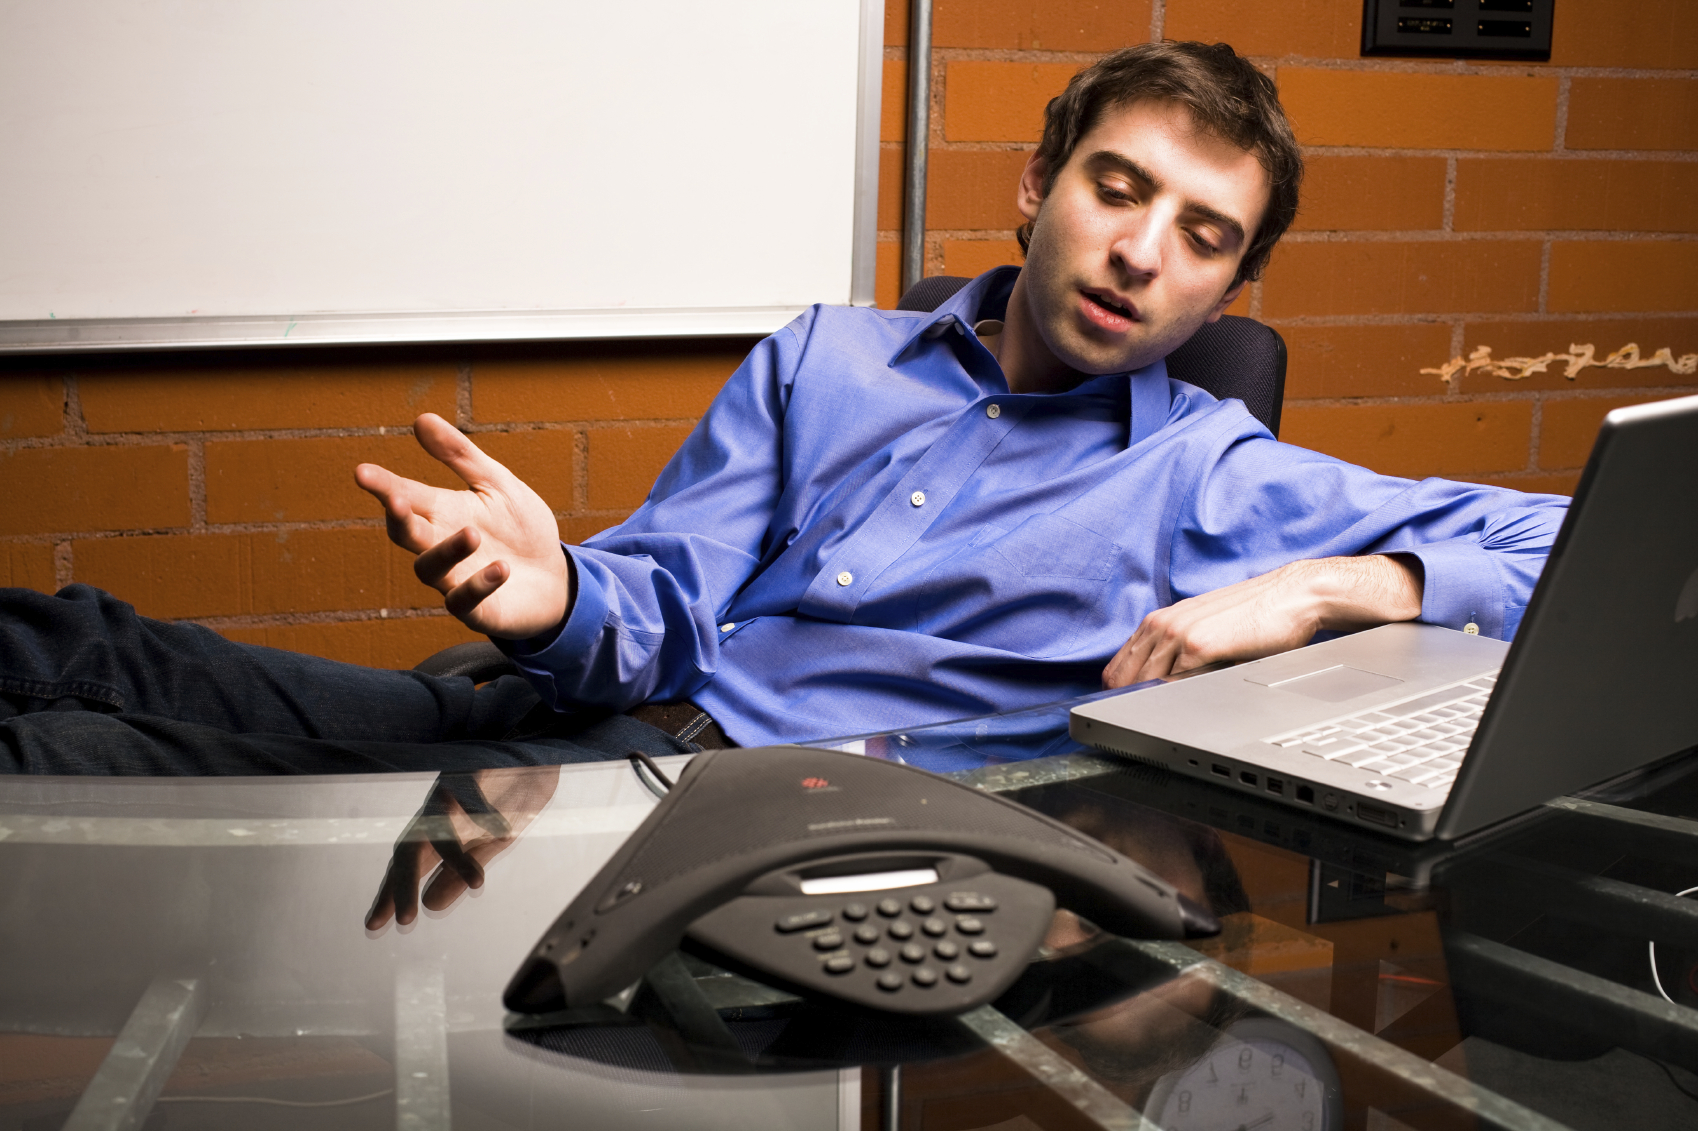 istock_guy-on-conference-call-000005505122medium1